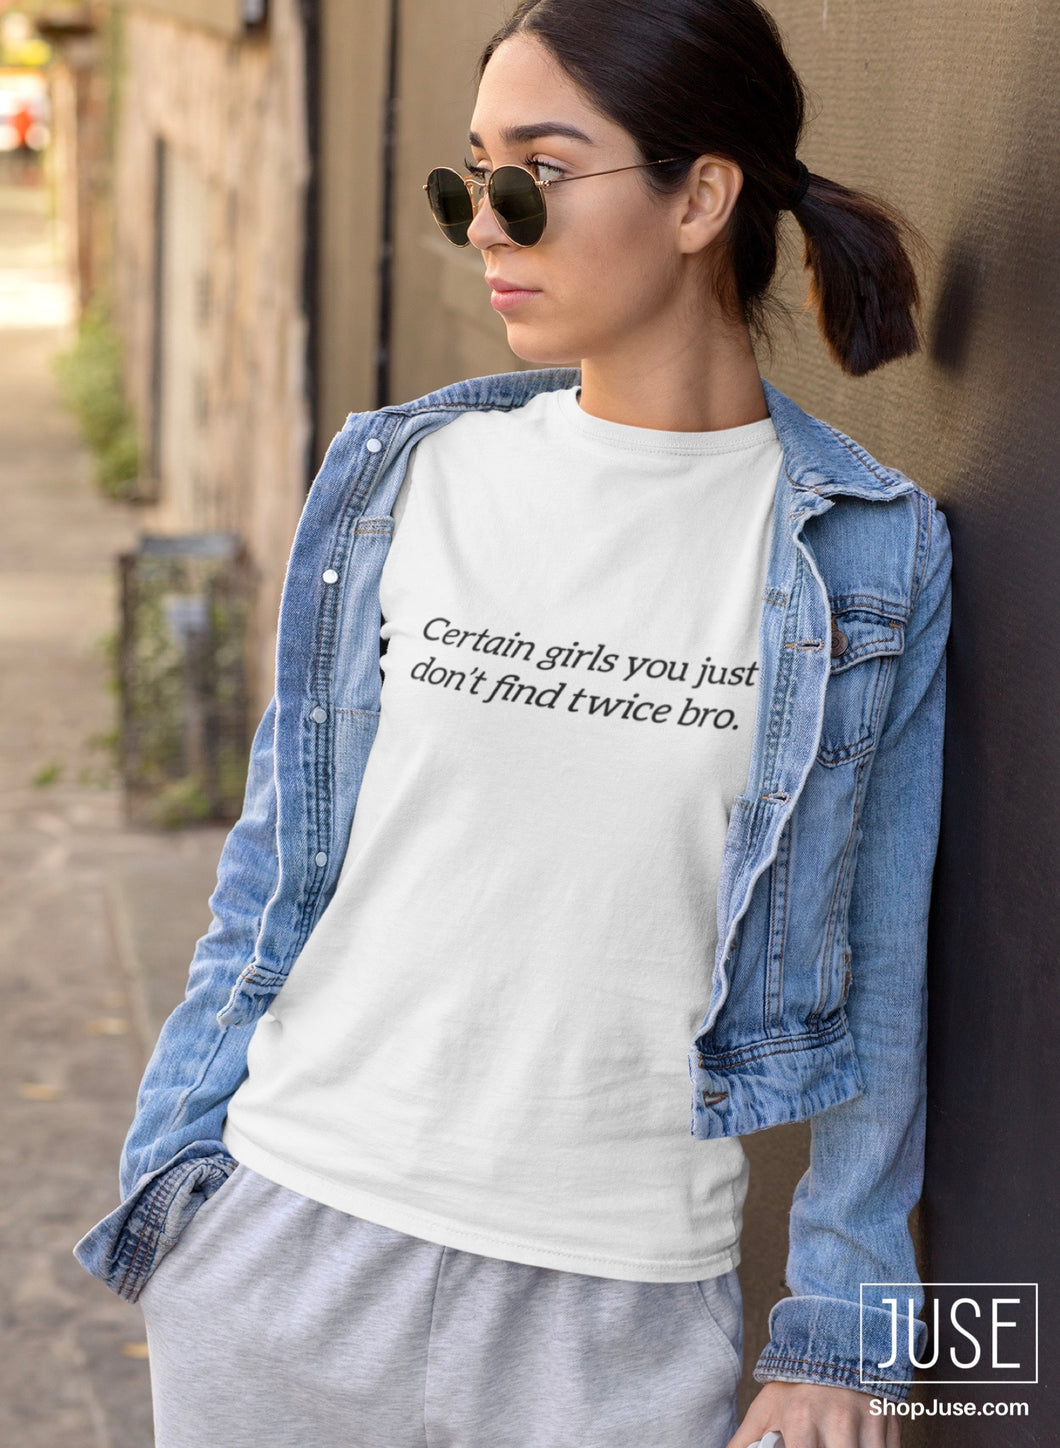 Certain Girls You Just Don't Find Twice Bro T-shirt